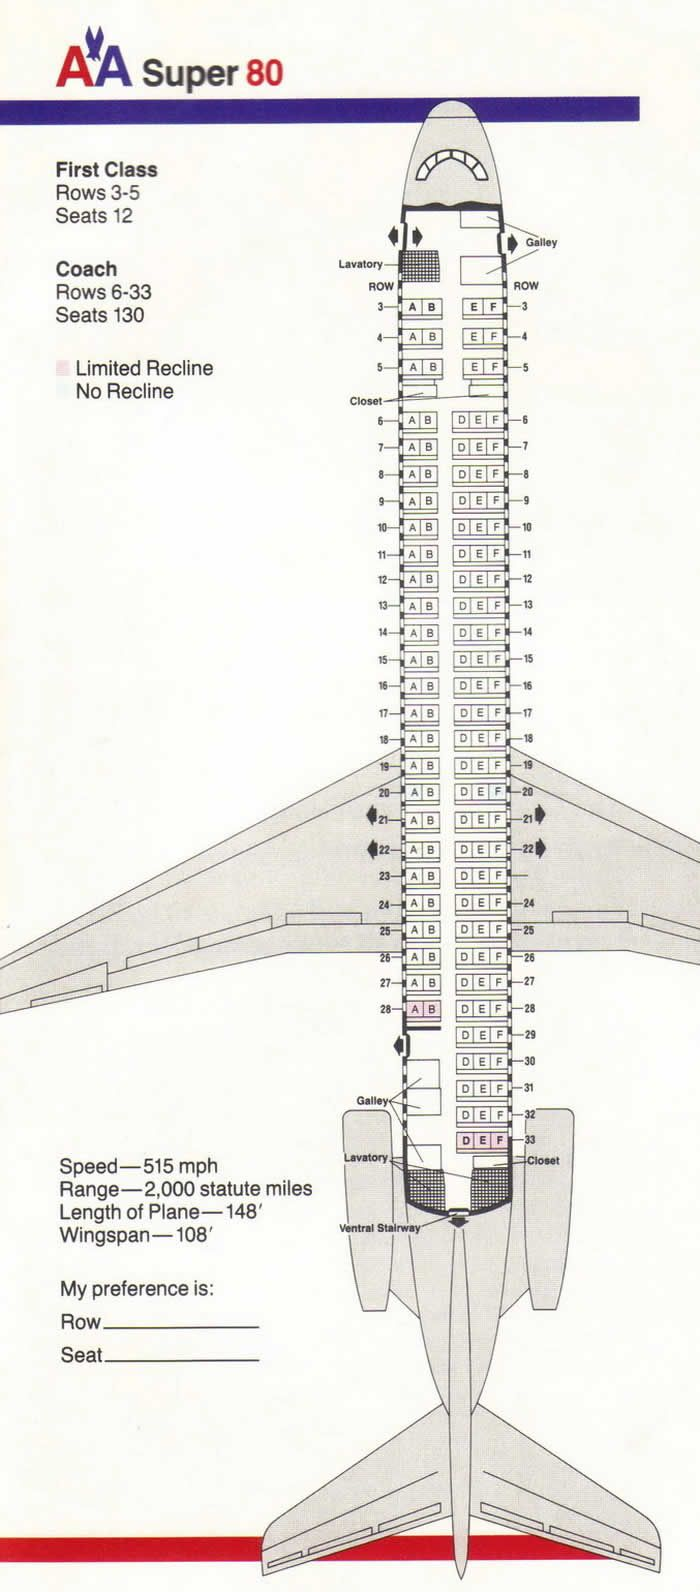 Aa Super 80 Vintage Airline Seating Charts Pinterest Aviation Small Boat Wiring Diagram For Aircraft And Plane